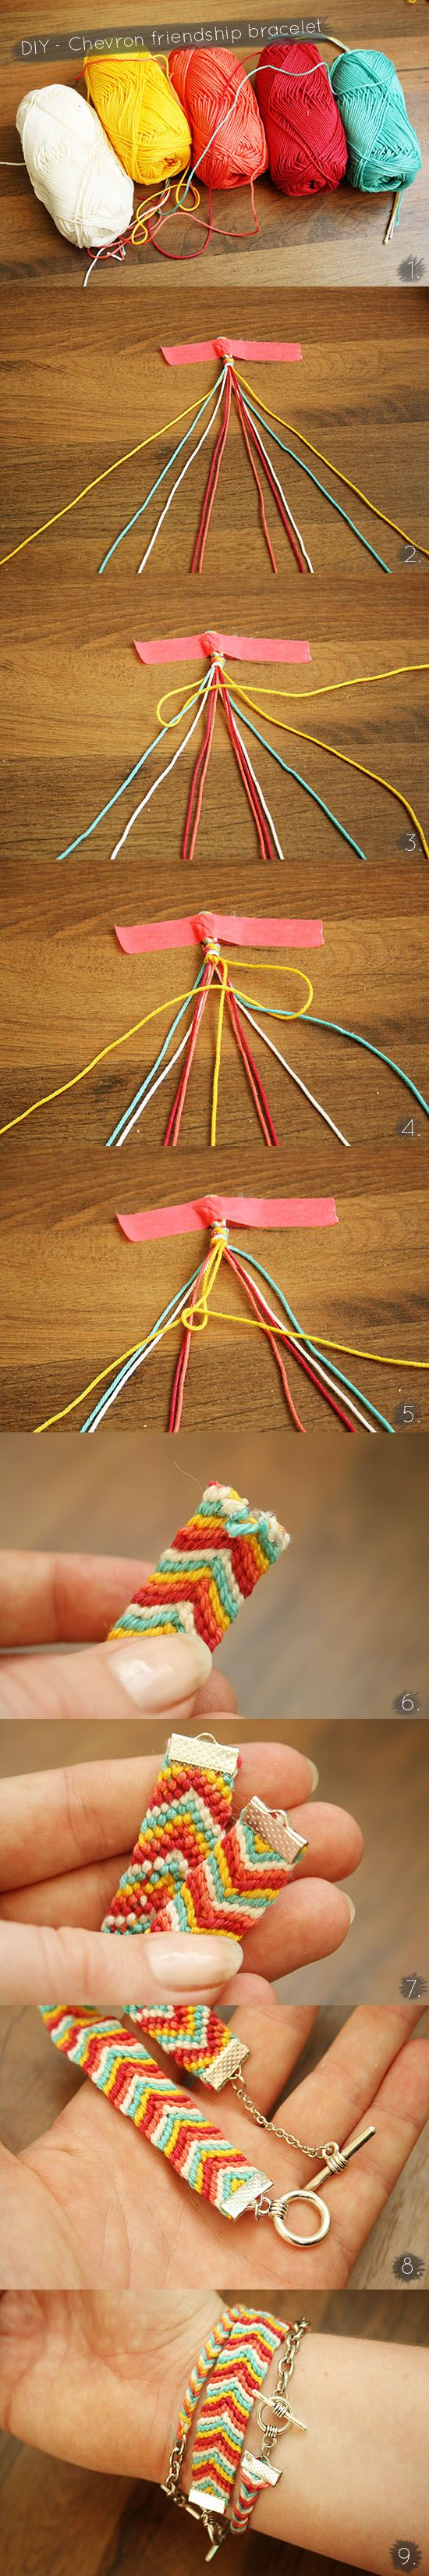 DIY - Chevron friendship bracelet tutorial    Wow, haven't made these in years. too funny!